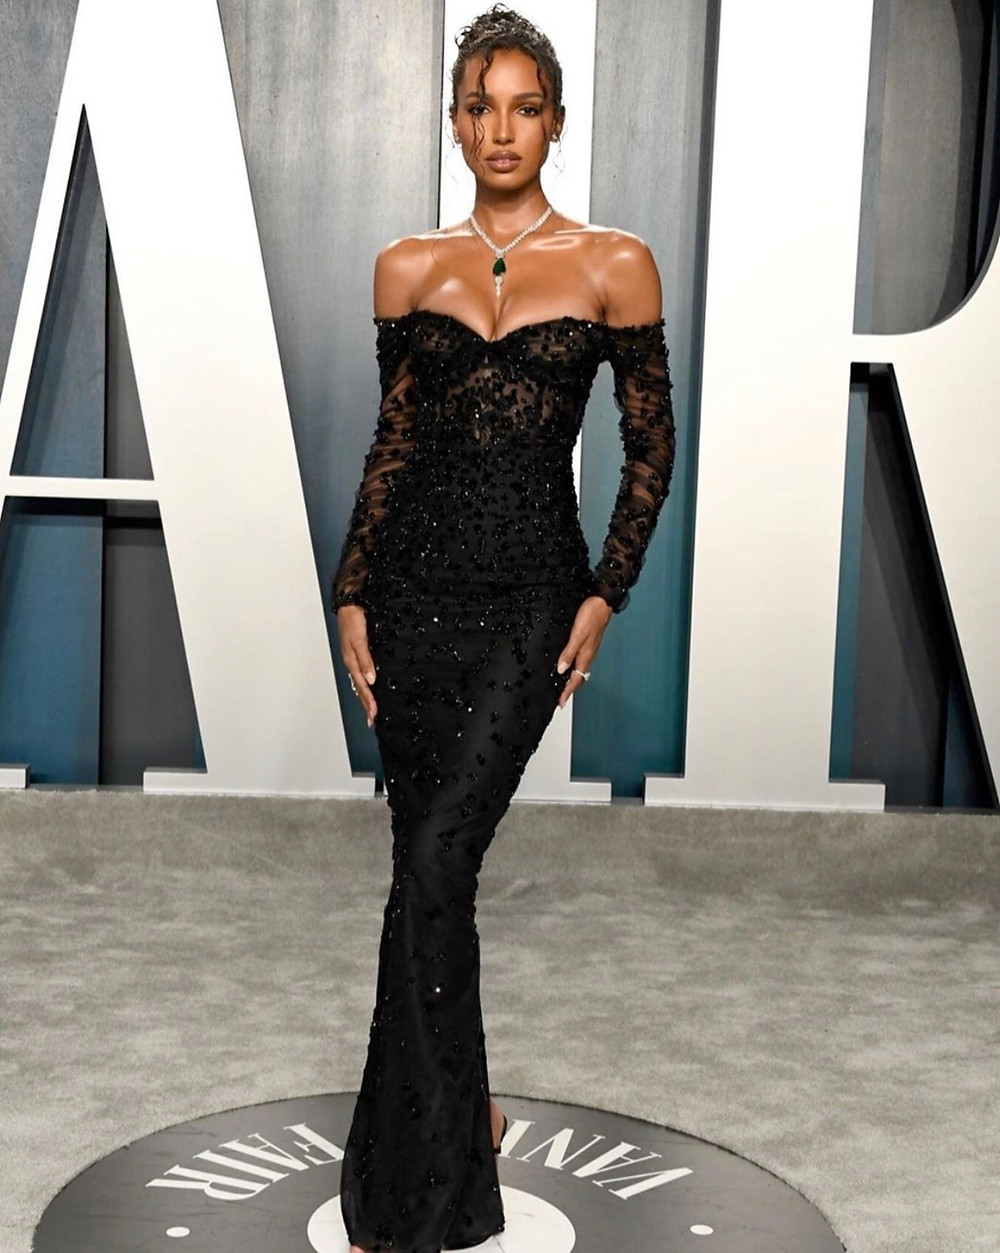 Model Jasmine Tookes at the Vanity Fair Oscars Afterparty 2020 styled by Cary Robinson Celebrity Stylist